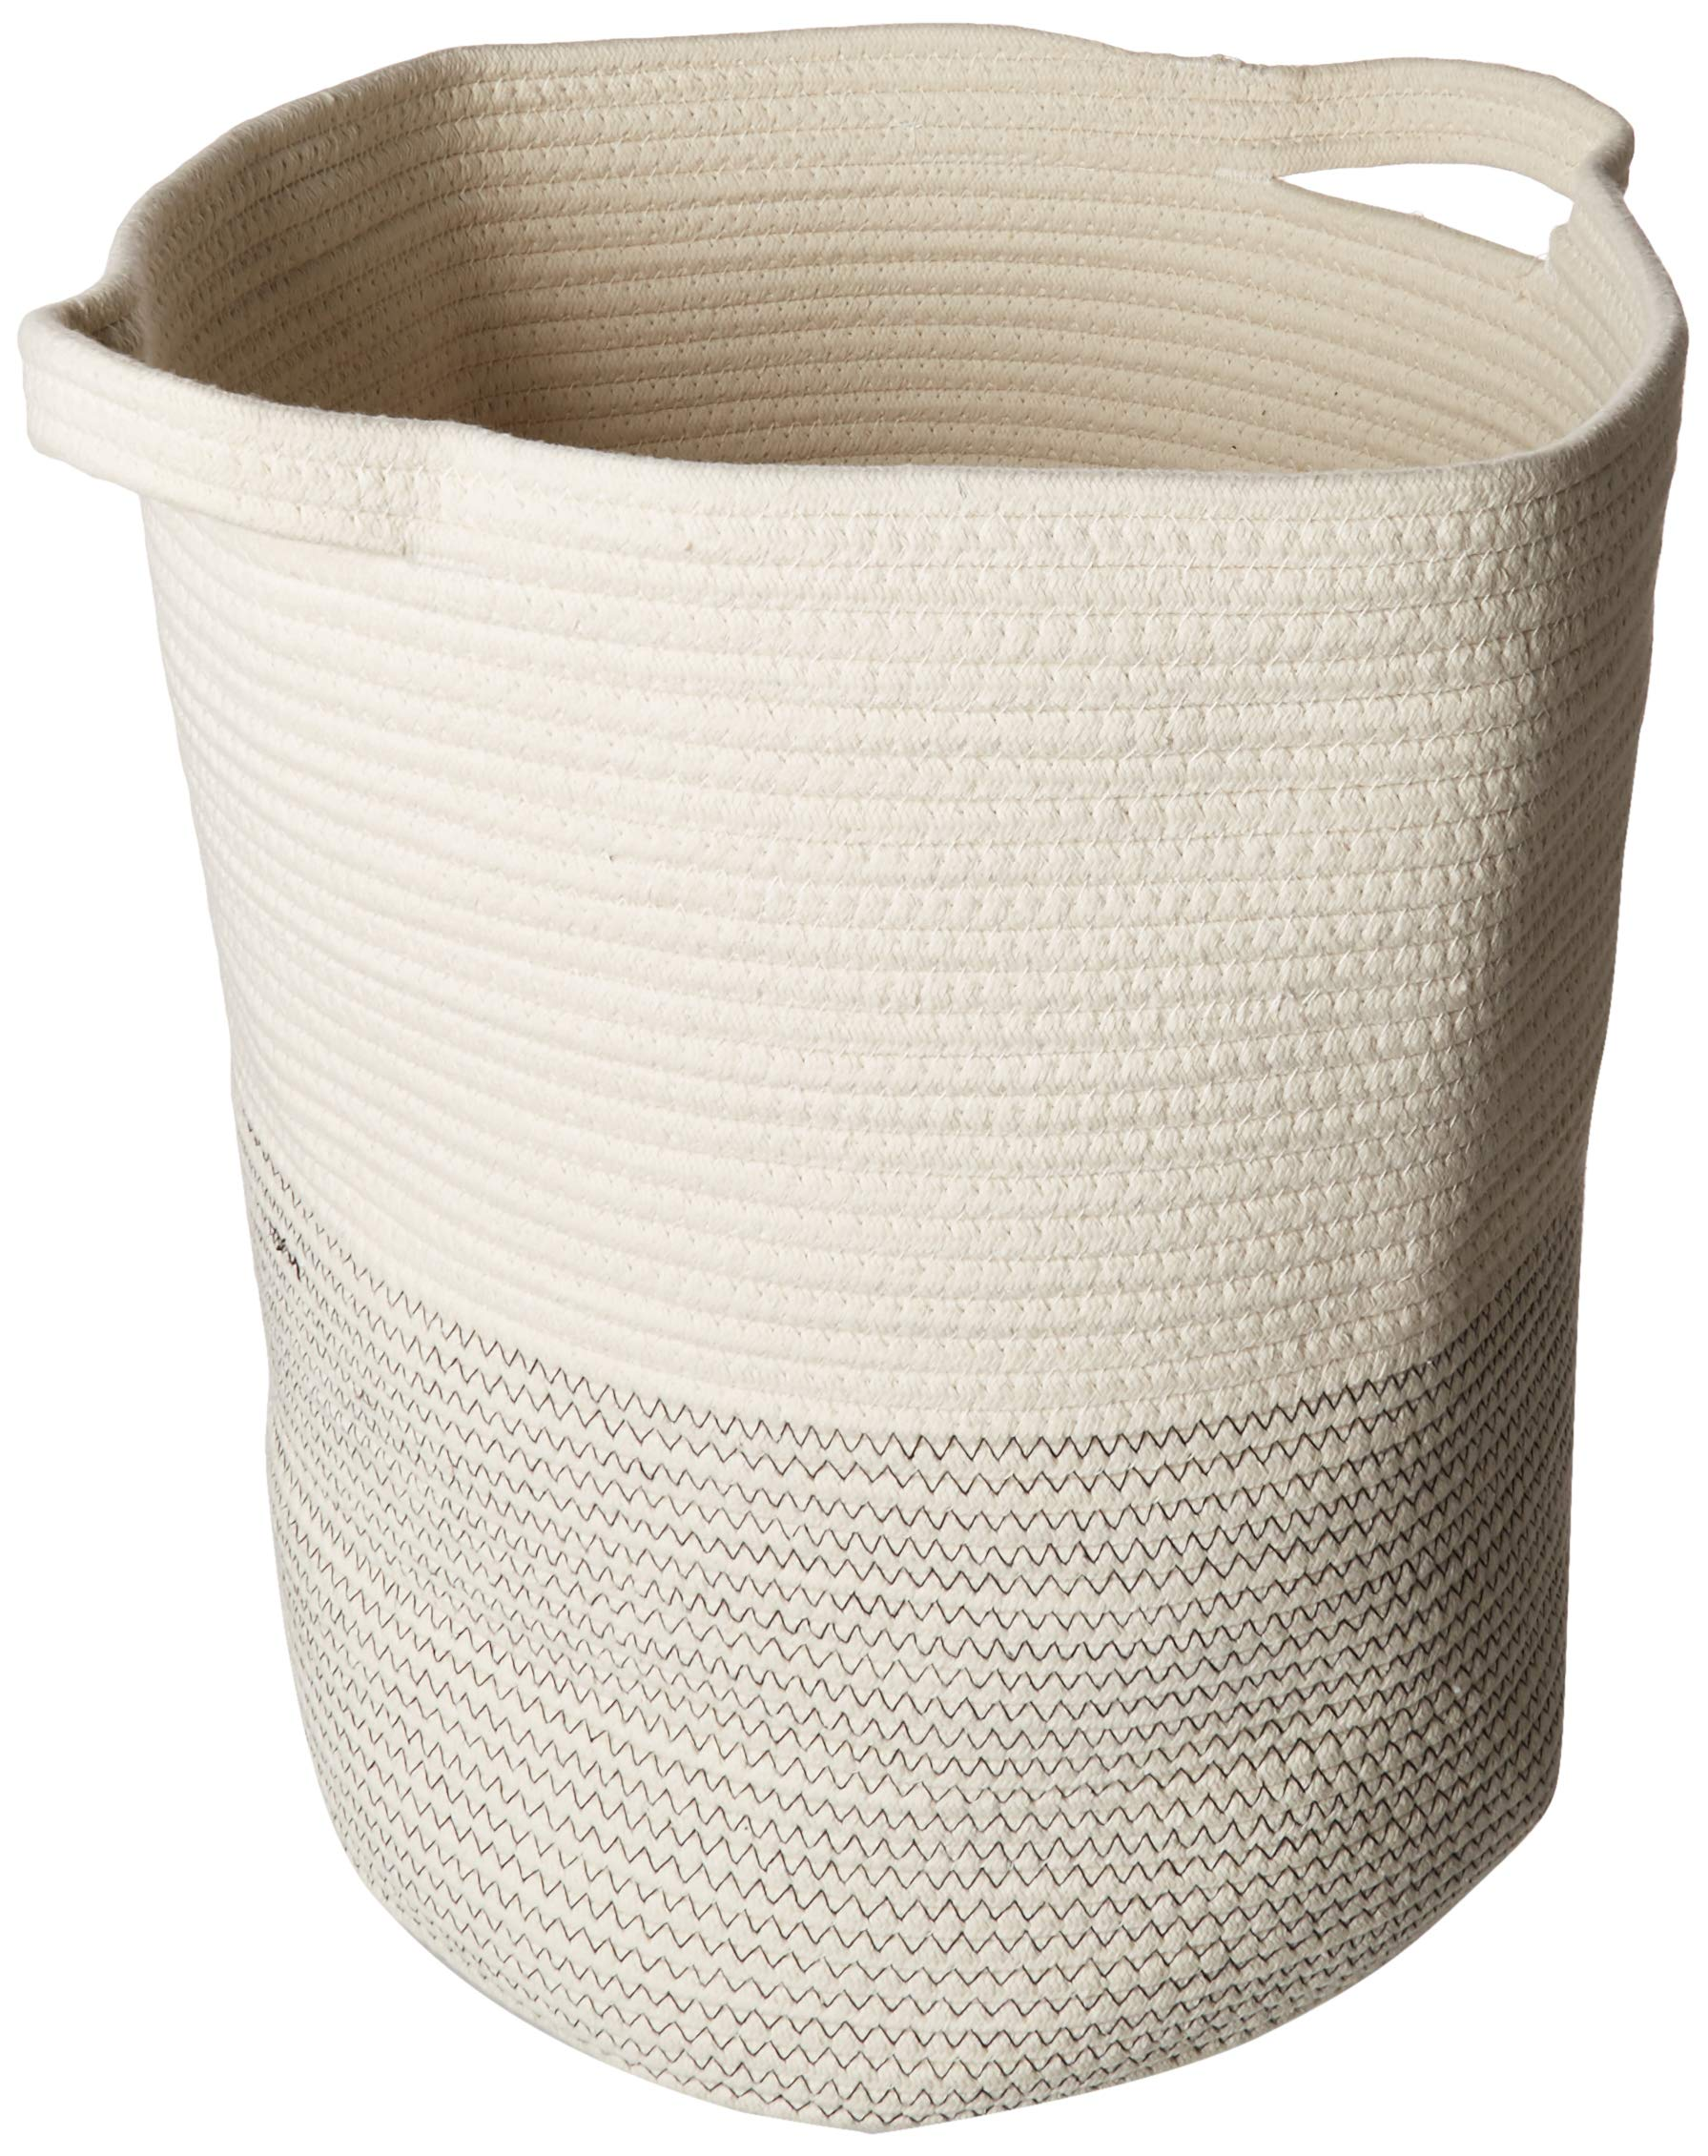 View-Line Extra Large White Woven Storage Basket - Black Stitch/Cotton Rope Organizer 16''x18''/Laundry Hamper with Handles/Decorative Basket for Living Room/for Nursery, Sofa Throws, Pillows or Toys